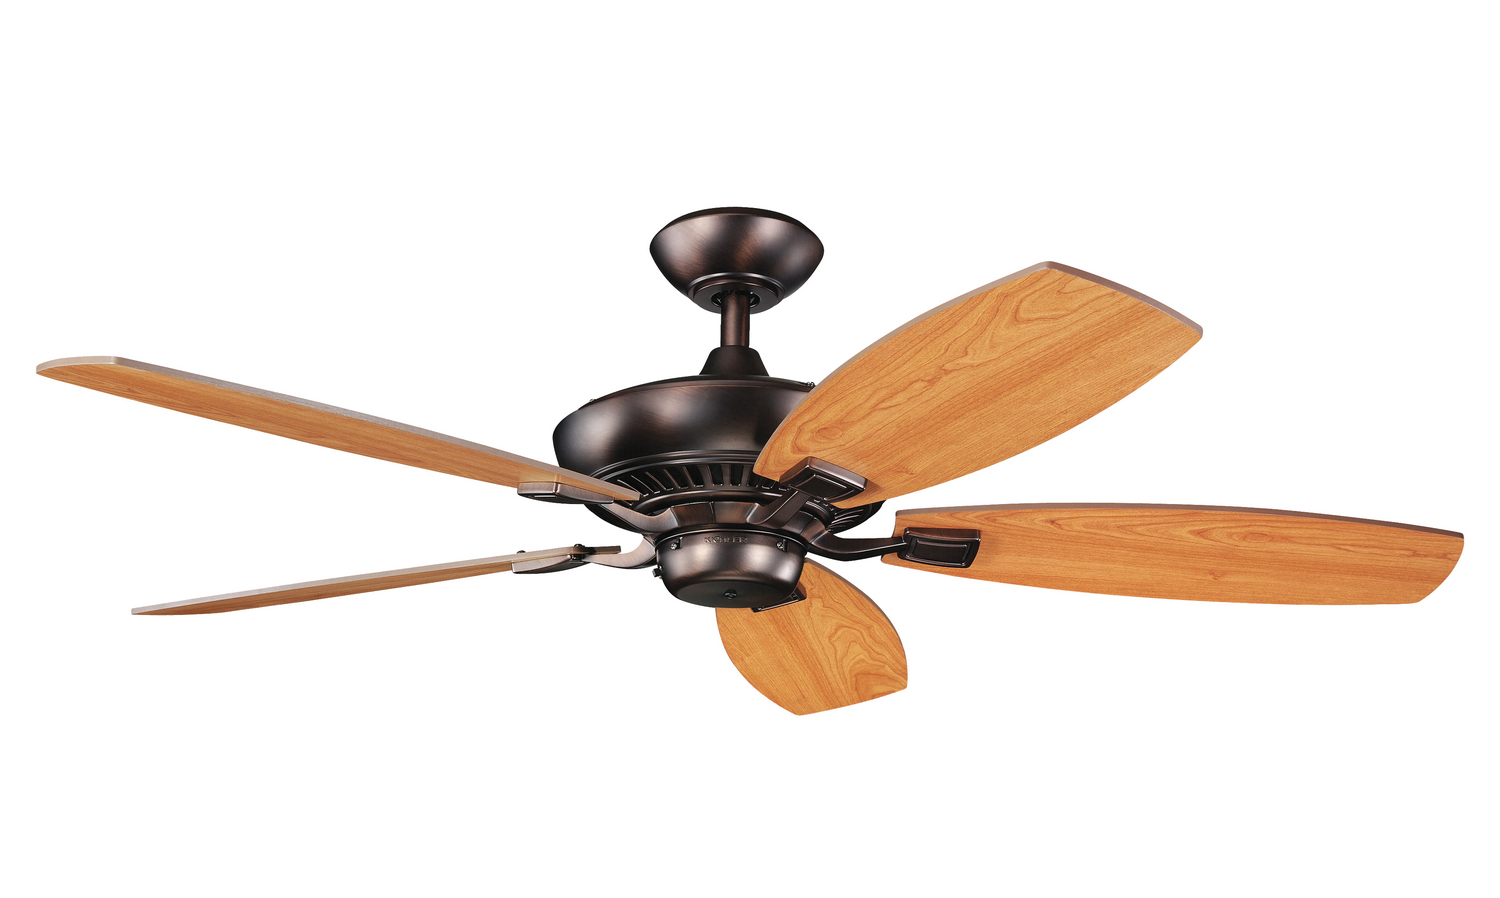 52 inchCeiling Fan from the Canfield collection by Kichler 300117OBB